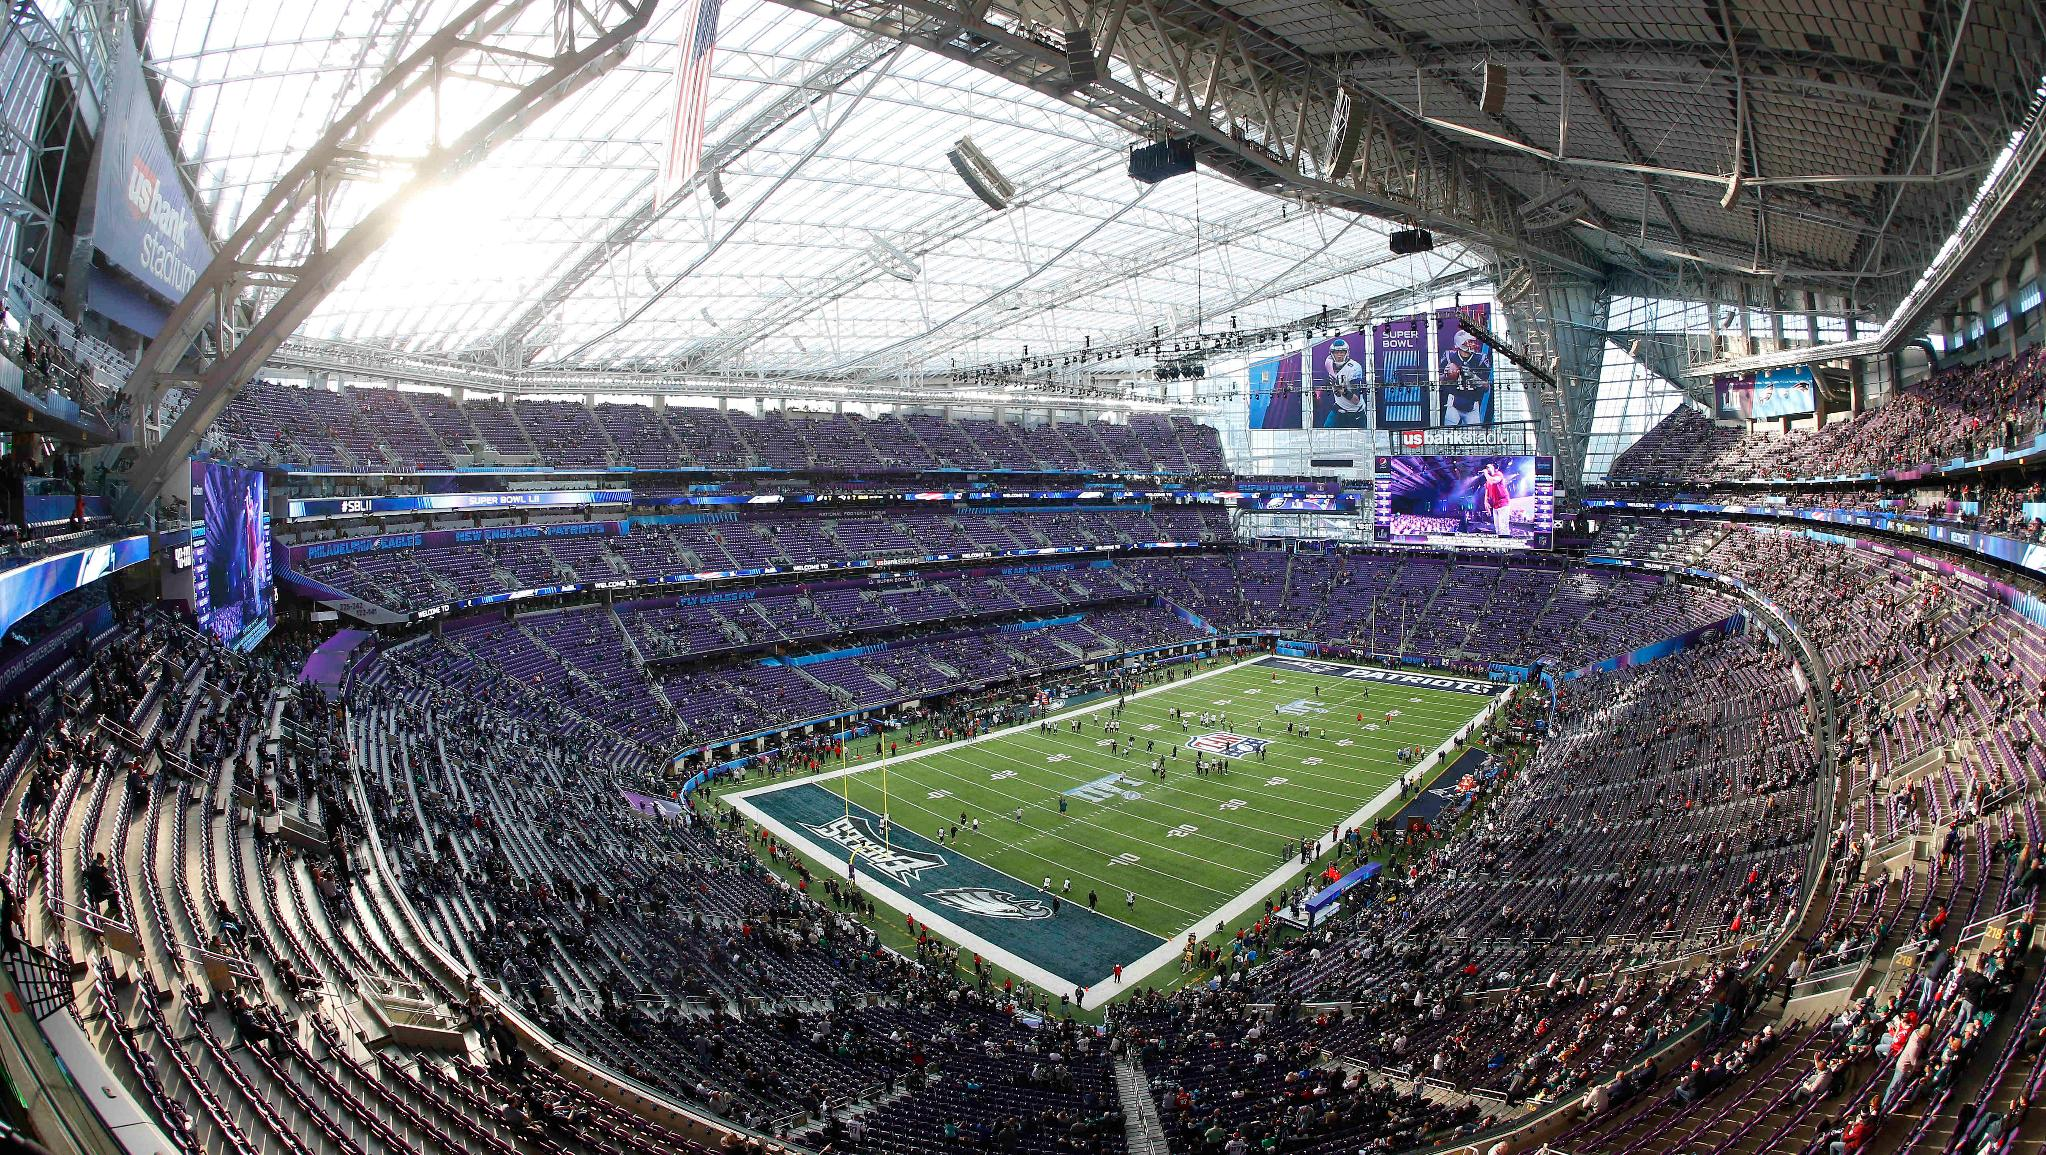 It was tough, but #Vikings fans found a silver lining in attending #SBLII.    ��: https://t.co/qY14eeDQZN https://t.co/rCg9XxV8Qm